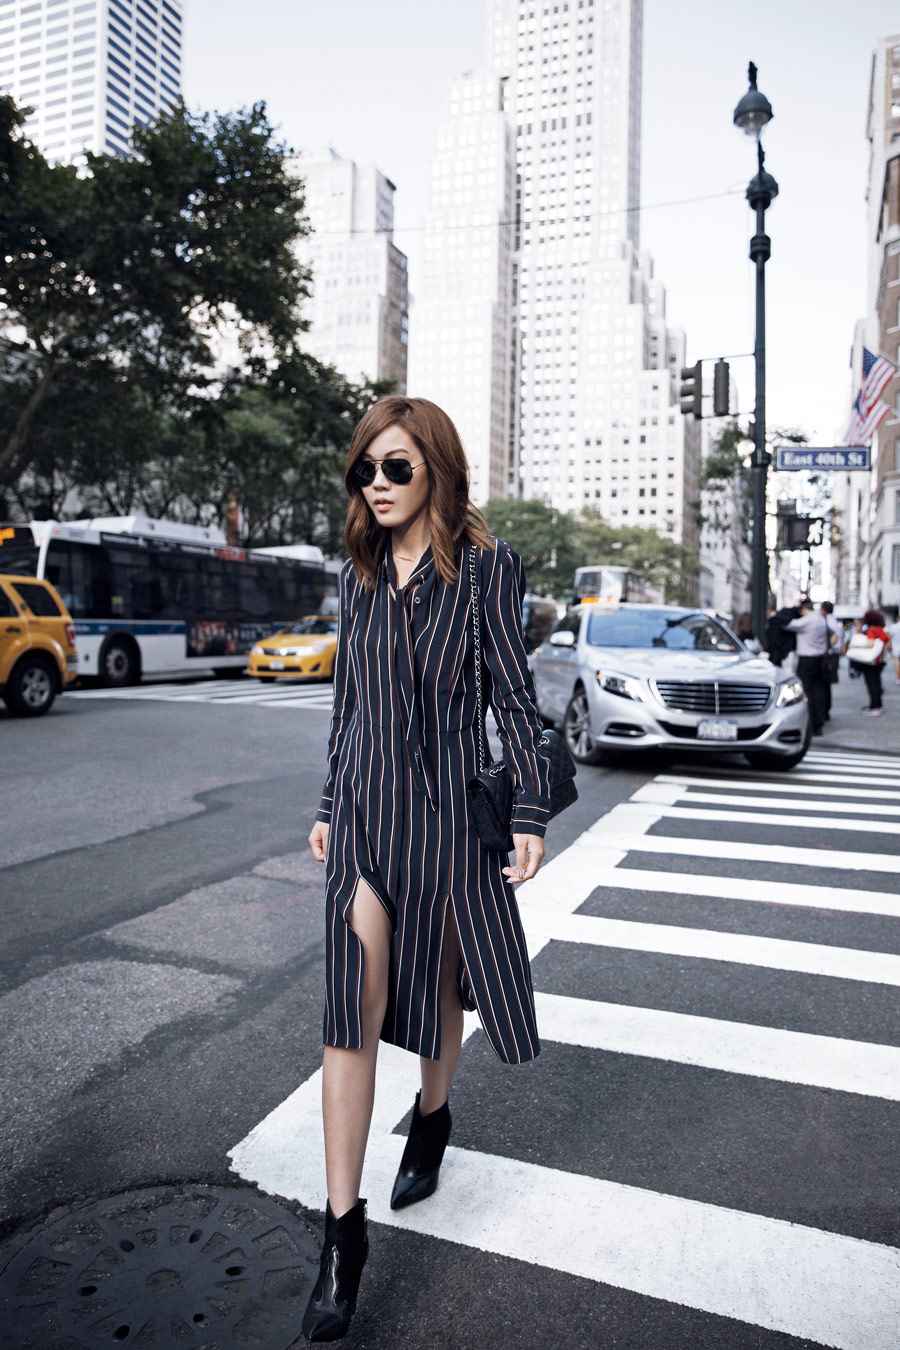 427d9f964ee This striped shirt dress looks effortlessly cool with simple black heels  and shades. Via Jenny